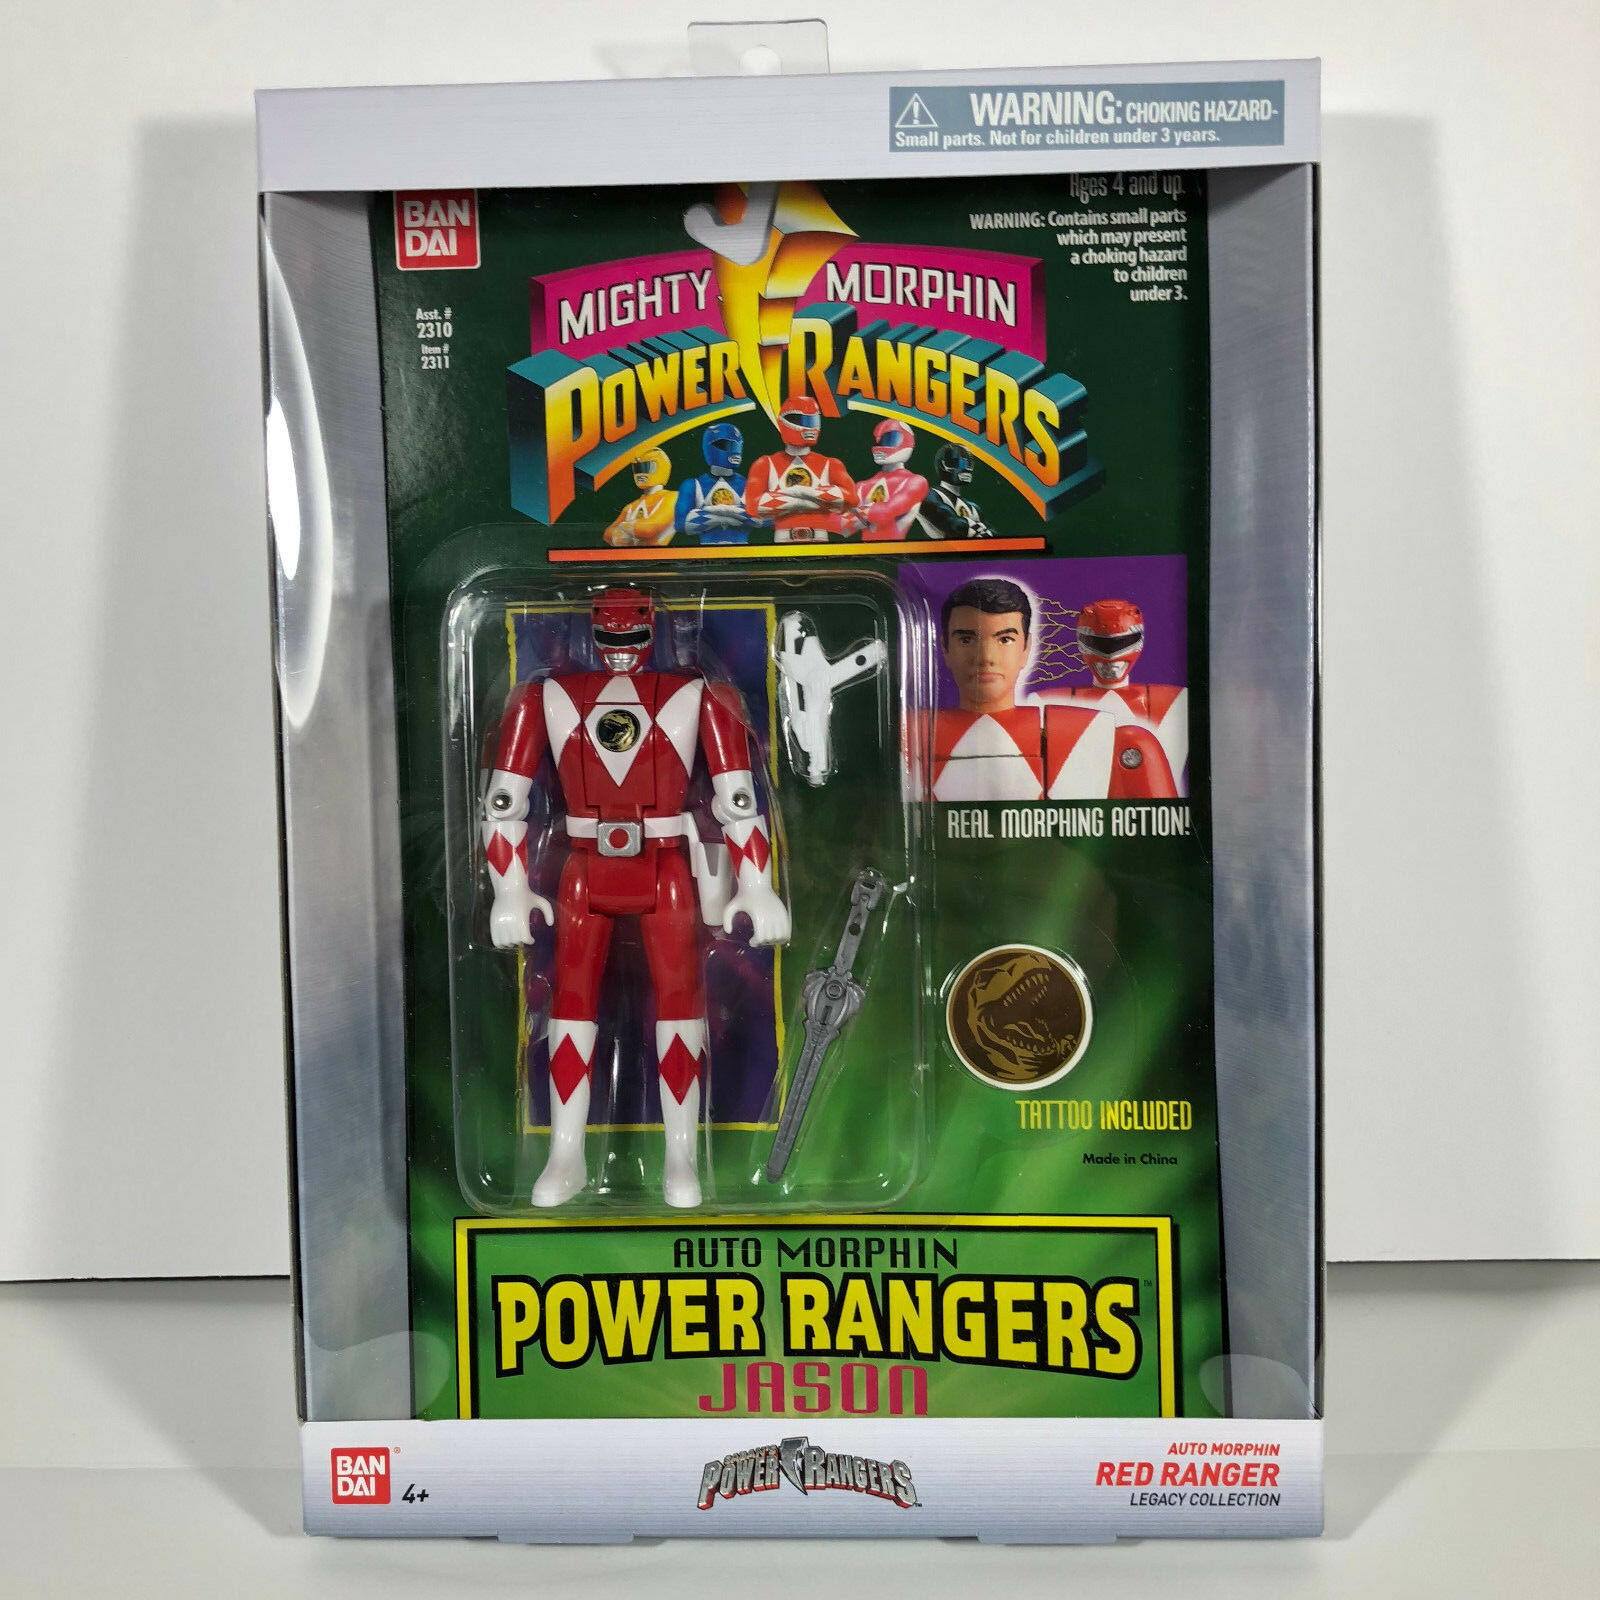 MMPR rot Ranger AUTO Morphin Legacy Collection Mighty Morphin Power Rangers NIB